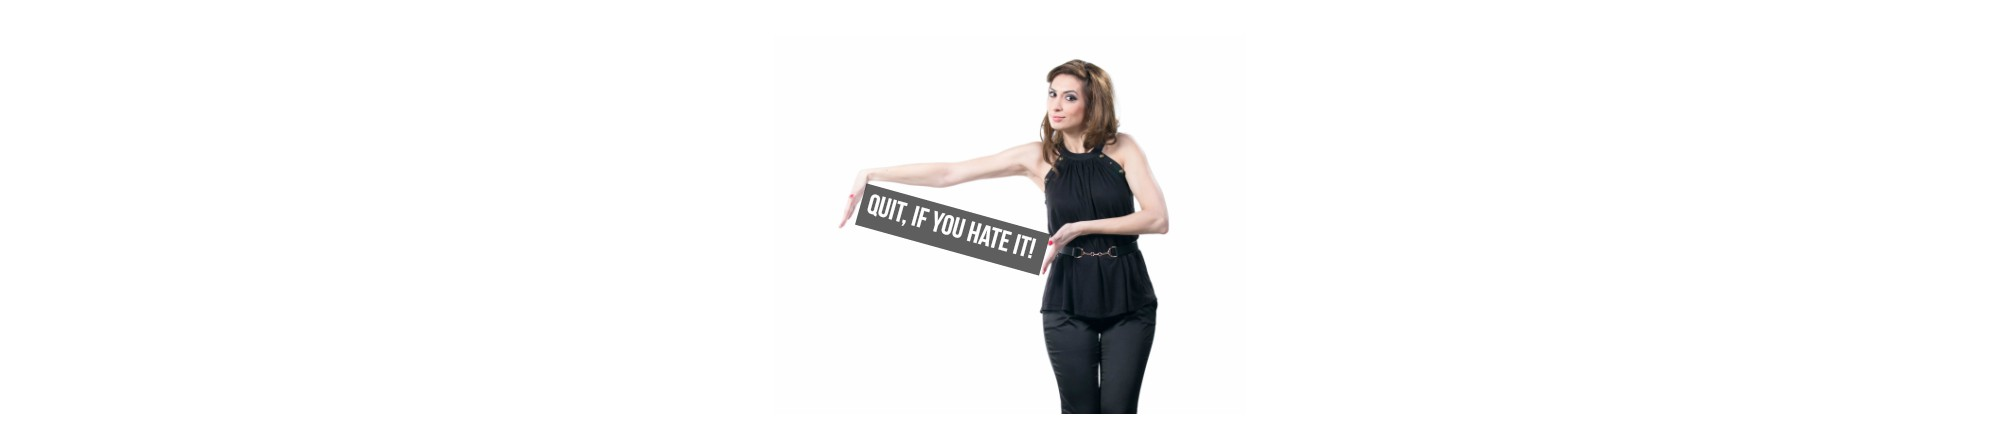 Quit, if you hate it